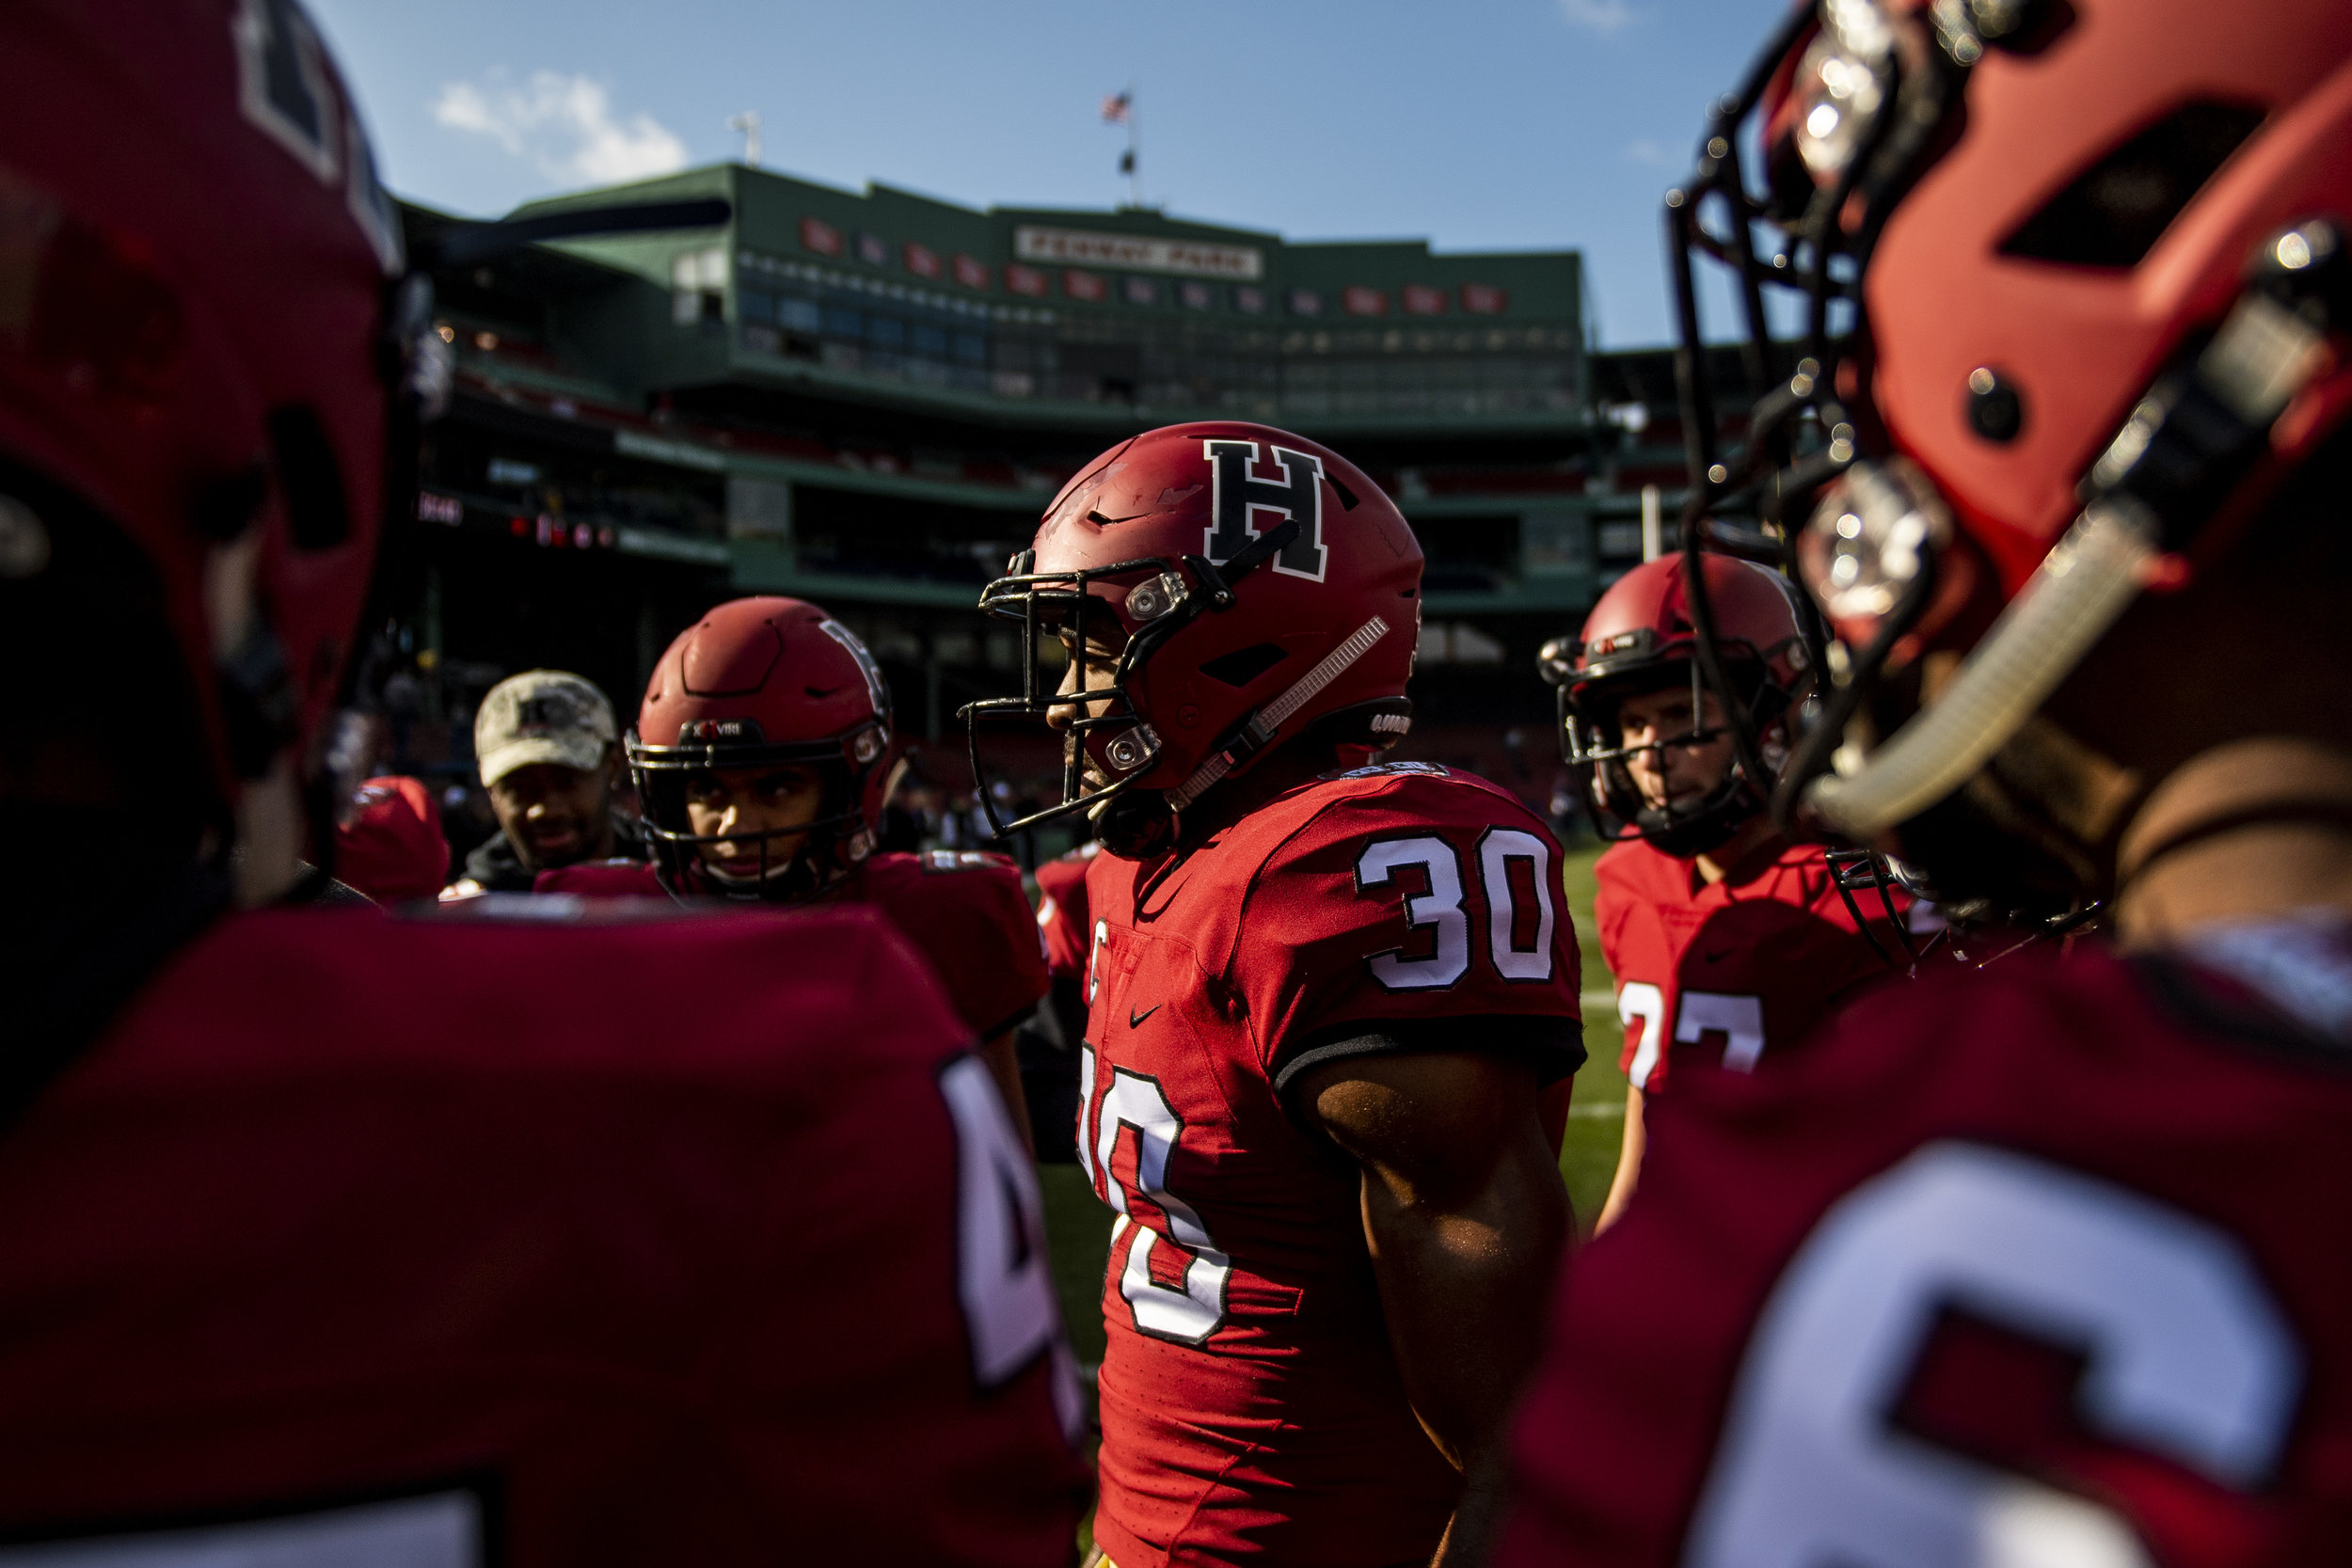 November 16, 2018, Boston, MA: Members of the Harvard football team in a pregame huddle before facing Yale at Fenway Park in Boston, Massachusetts on Thursday, November 16, 2018. (Photo by Matthew Thomas/Boston Red Sox)